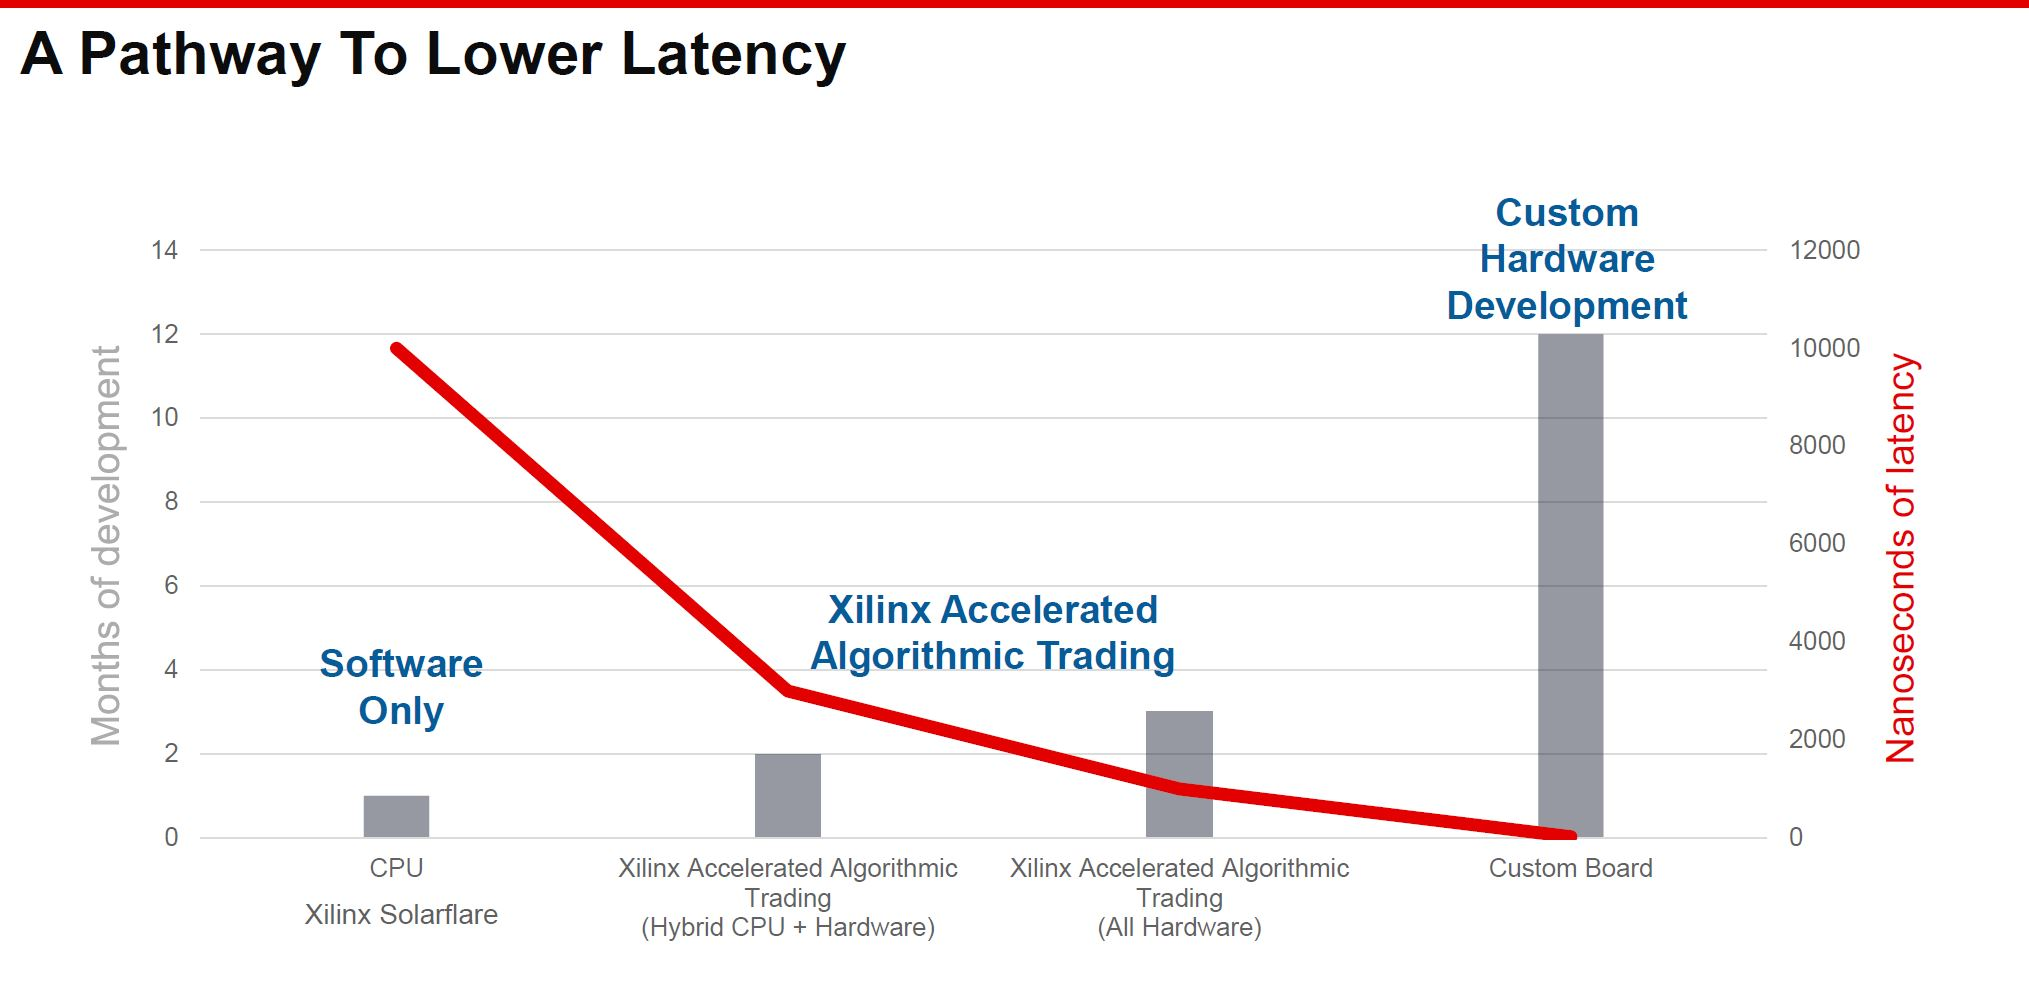 Xilinx Accelerated Algorithmic Trading Lower Latency